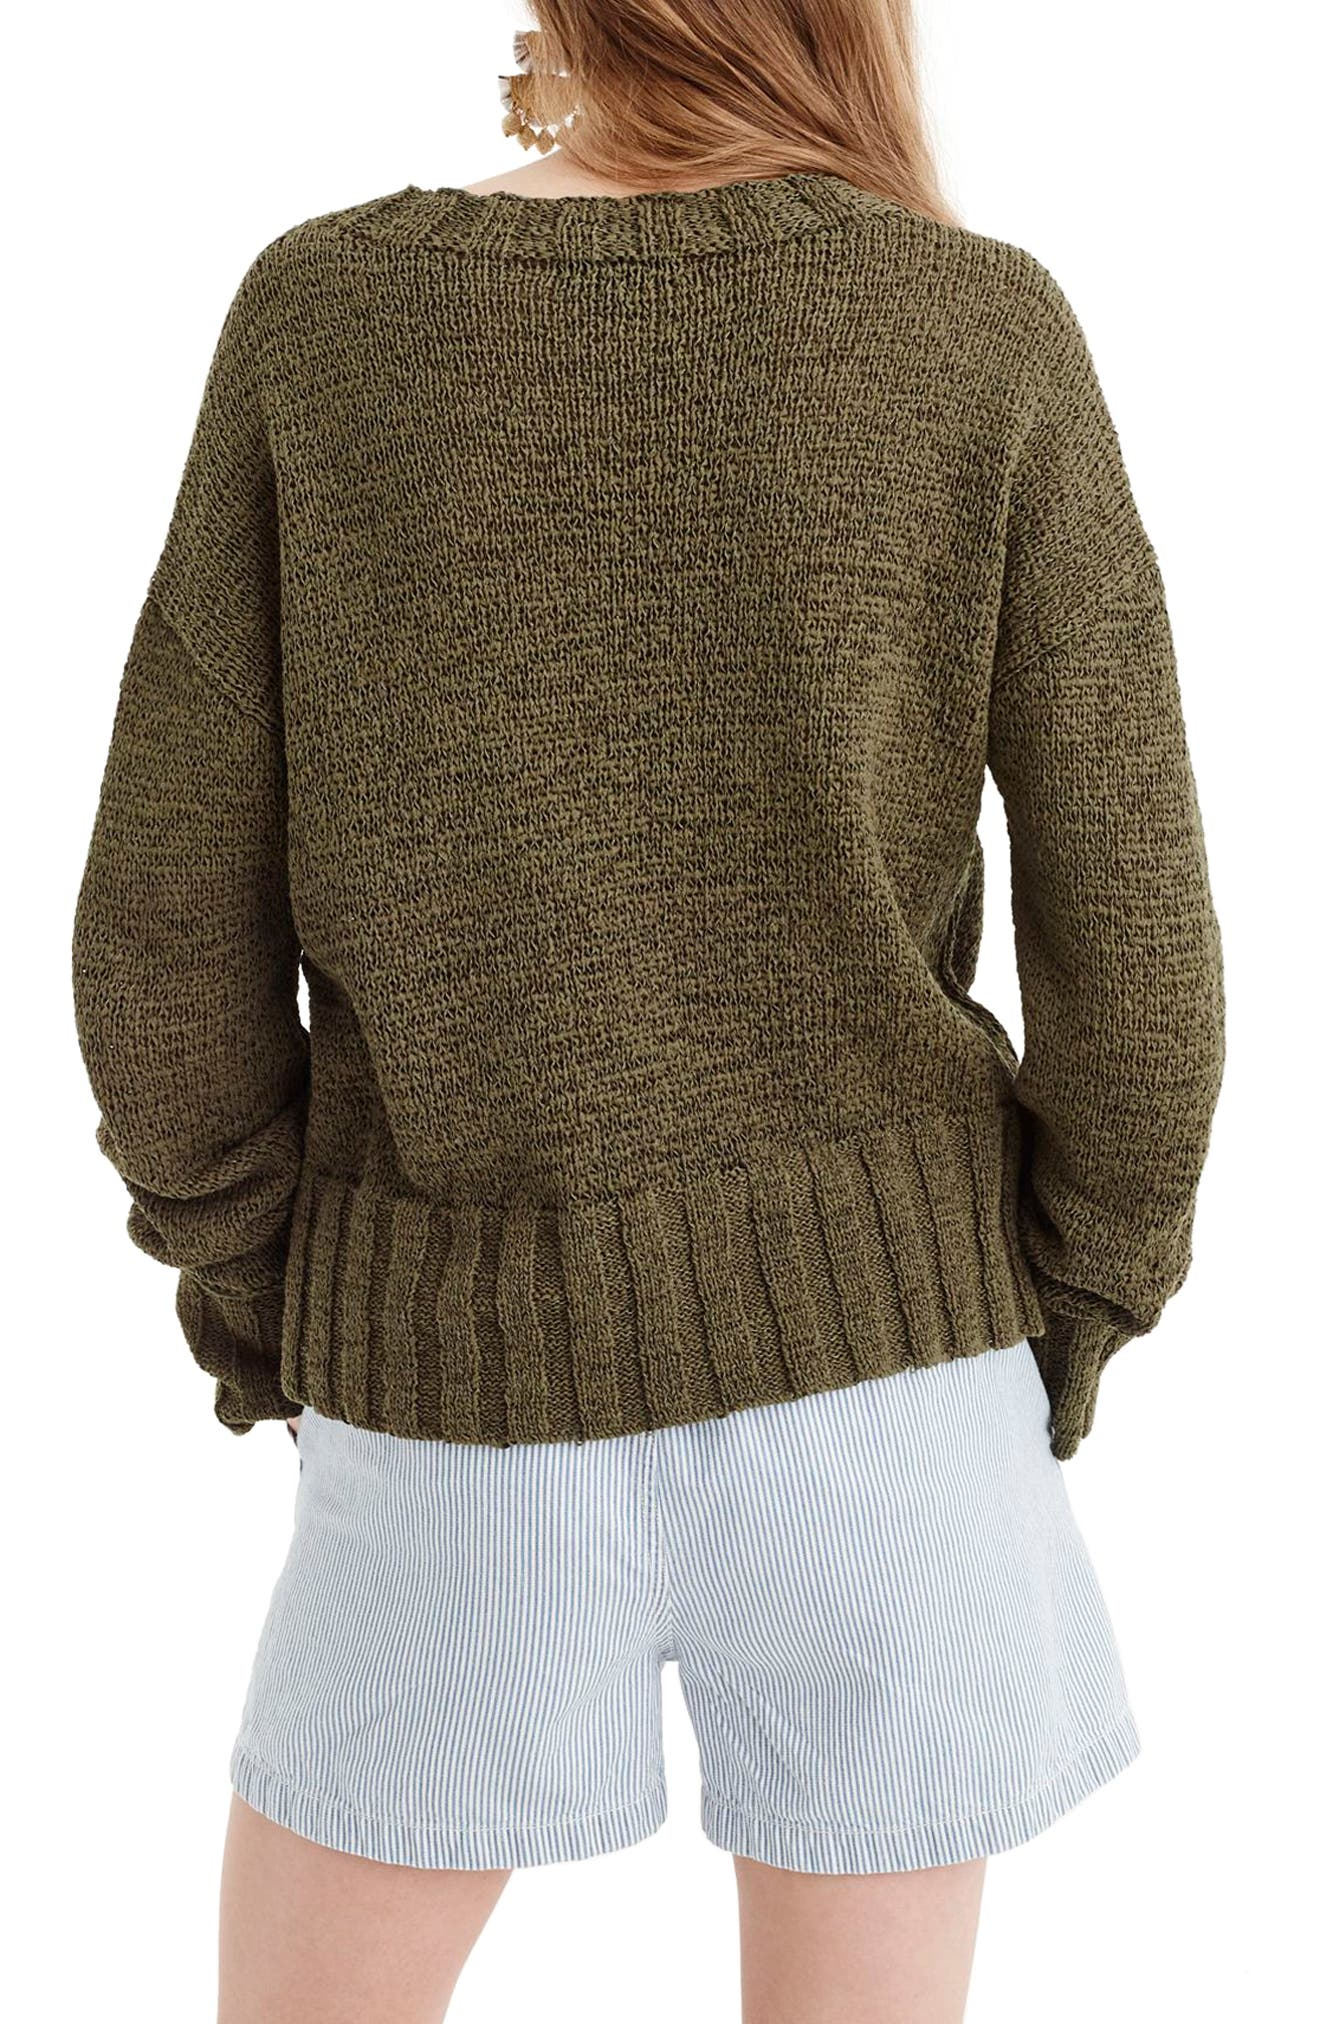 Erica Heathered Cotton Wide Rib Crewneck Sweater,                             Alternate thumbnail 4, color,